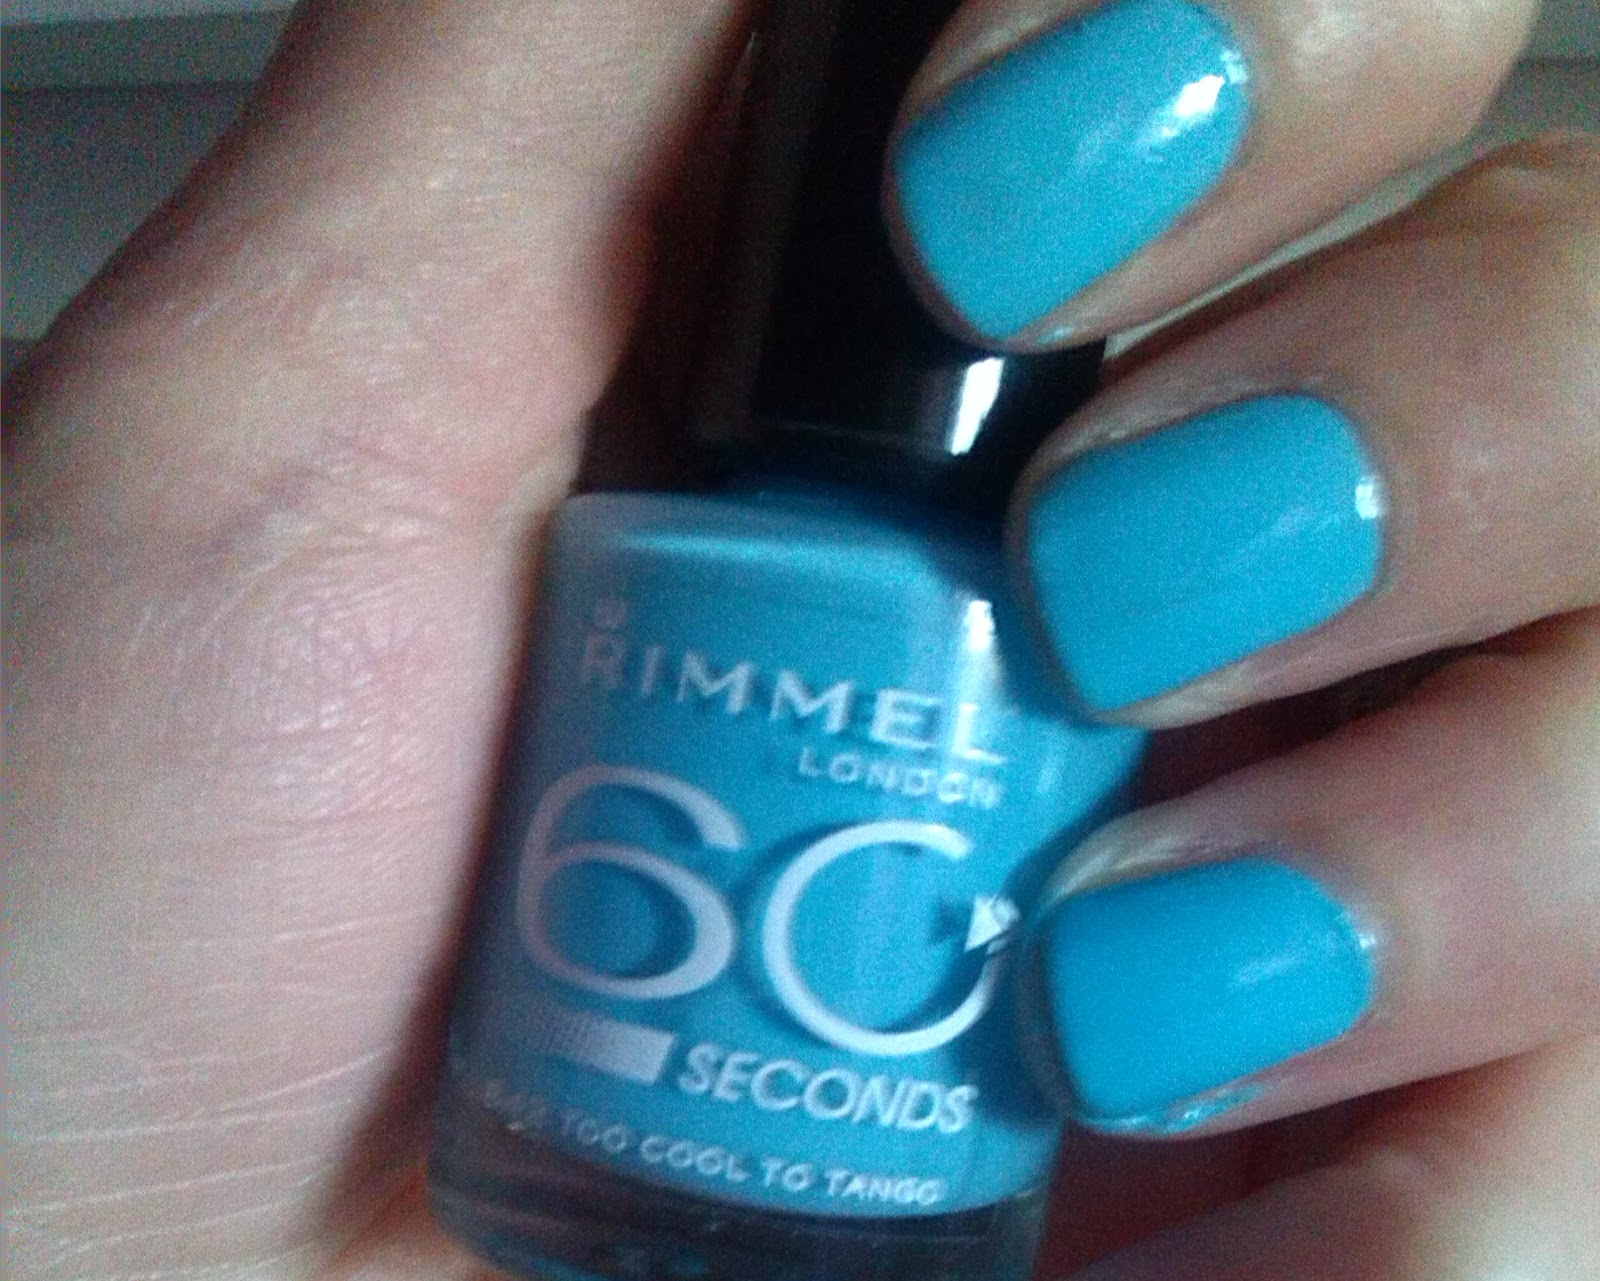 Rimmel Nail Polish in Too Cool To Tango